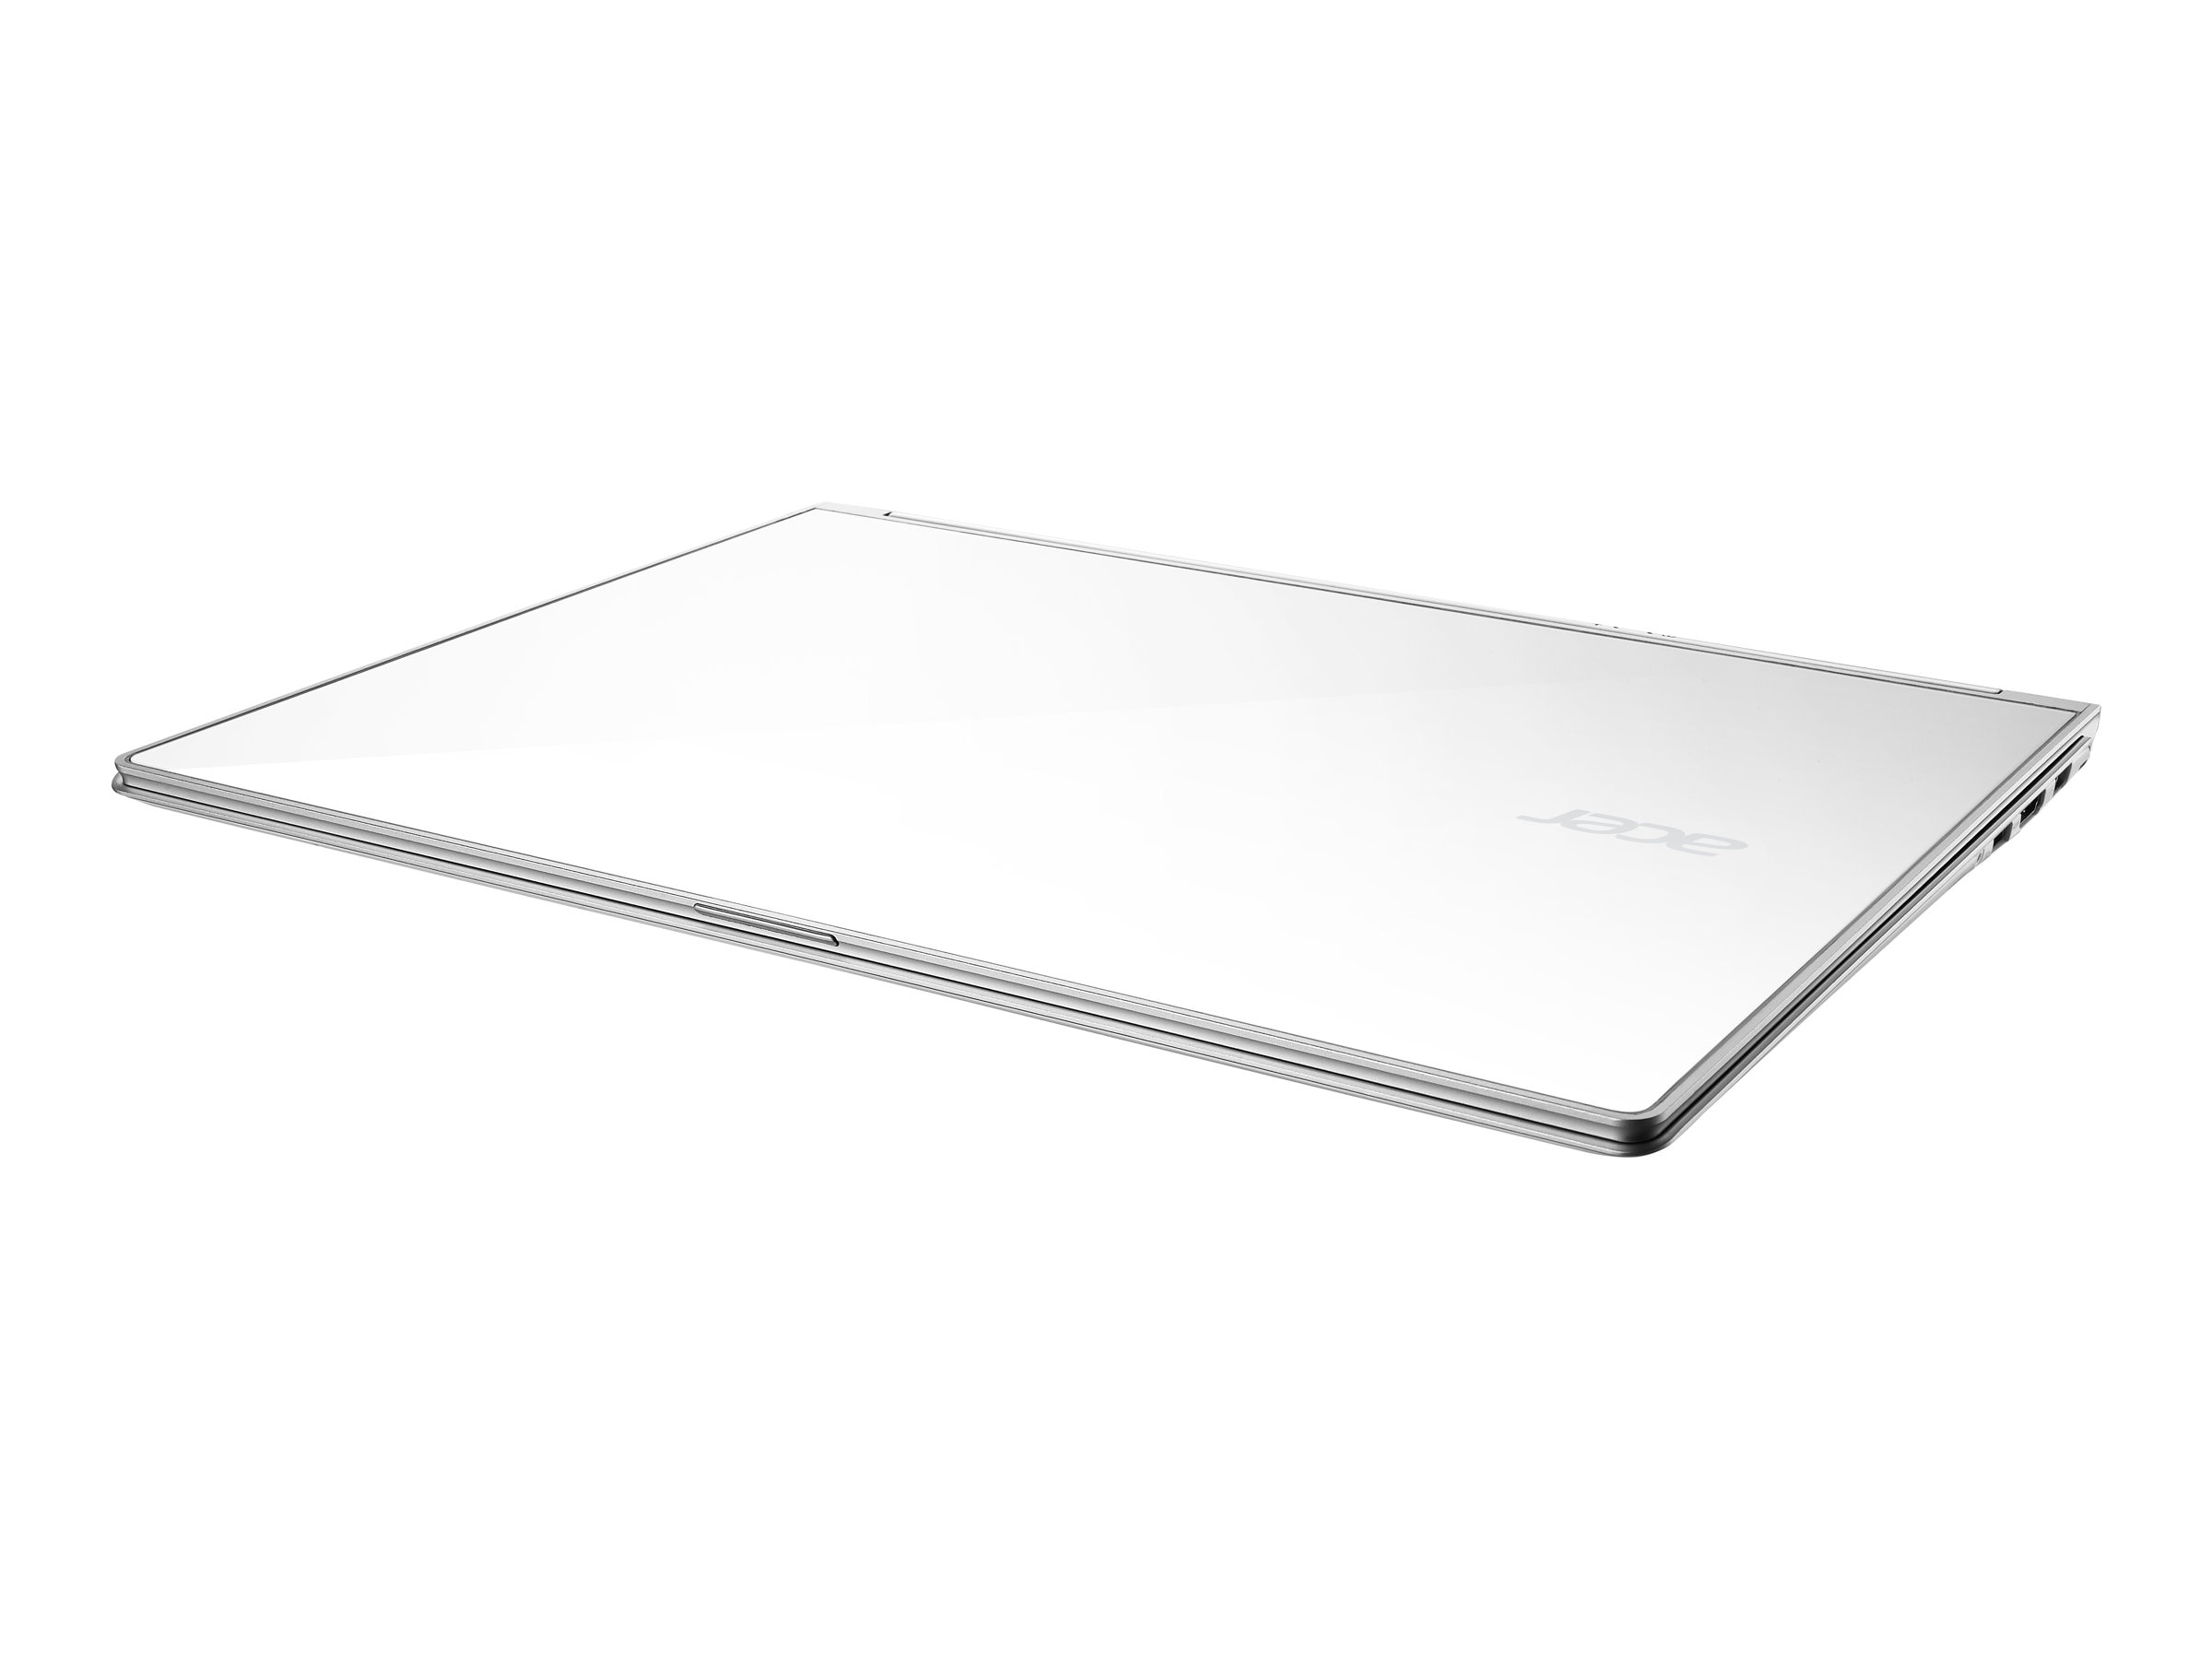 Acer Aspire S7-393-7451 Core i7-5500U 2.4GHz 8GB 256GB SSD ac abgn WC 4C 13.3 FHD MT W8.1-64, NX.MT2AA.001, 30840713, Notebooks